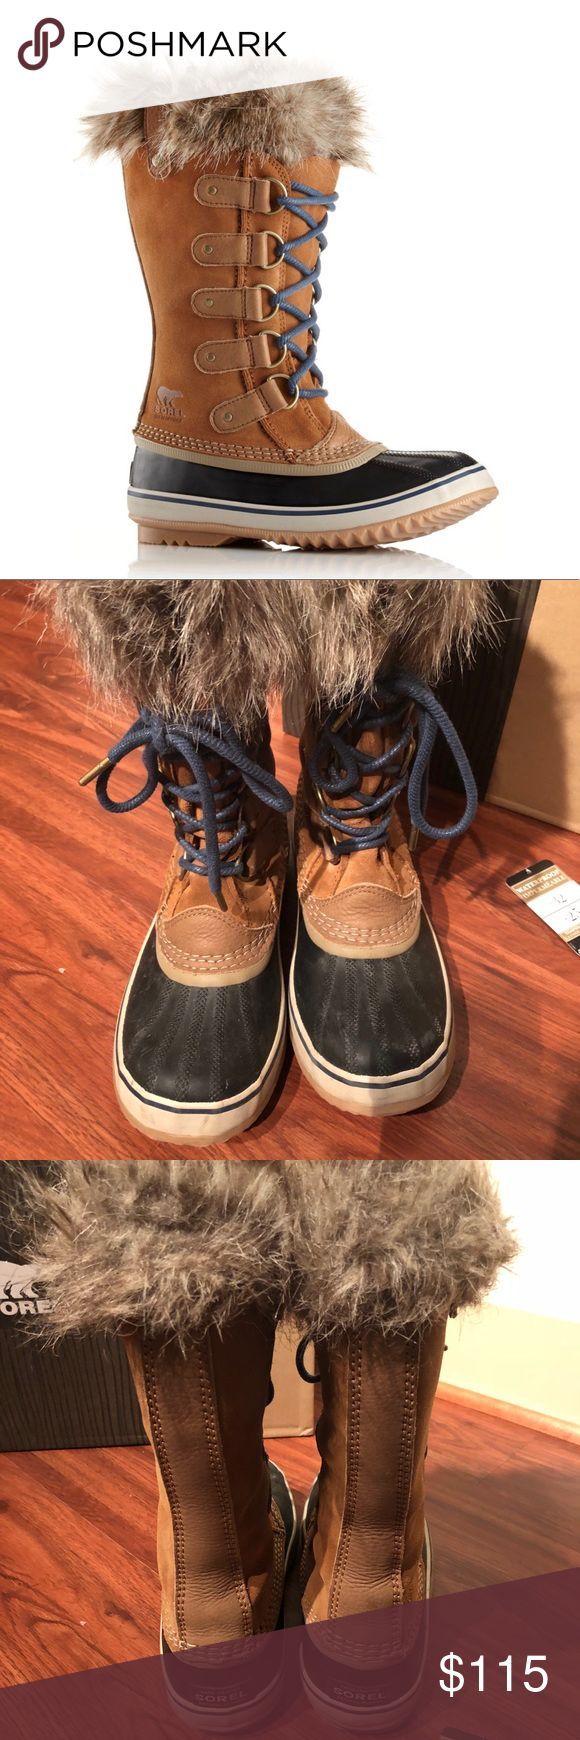 Sorel Joan of Arctic size 7.5 Boots Worn for one trip! They keep your feet warm and dry and are super cute, but I live in Texas and don't need them anymore.   UPPER: Waterproof suede leather upper. Faux fur cuff. Seam-sealed waterproof construction. INSULATION: Removable 6 mm recycled felt inner boot. MIDSOLE: 2.5 mm bonded felt frost plug. OUTSOLE: Handcrafted waterproof vulcanized rubber shell with herringbone outsole.  SOREL rated: -25° fahrenheit / -32° Celsius. Weight: 31 oz / 879 g…